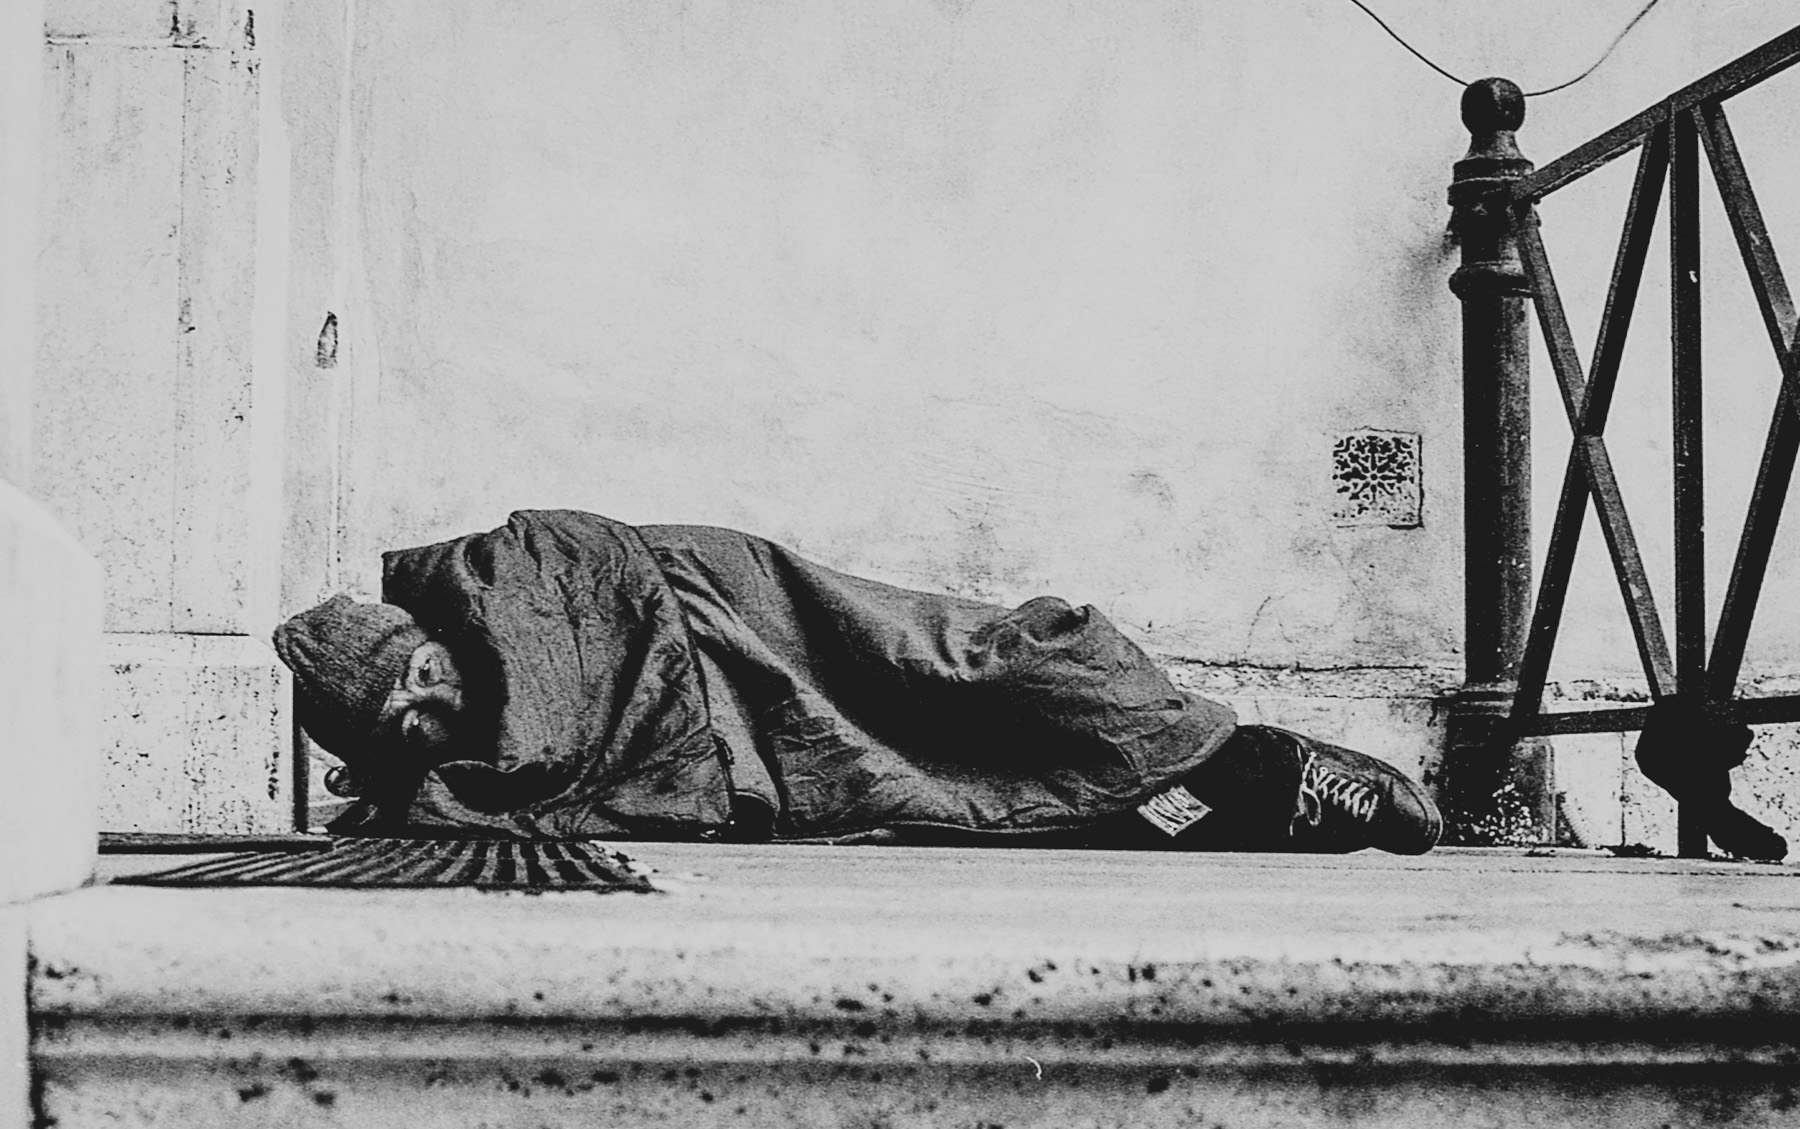 ABOVE and BELOW: My first encounter with a homeless man, sleeping on the stepsof a churcha ten minute walk from the city centre.